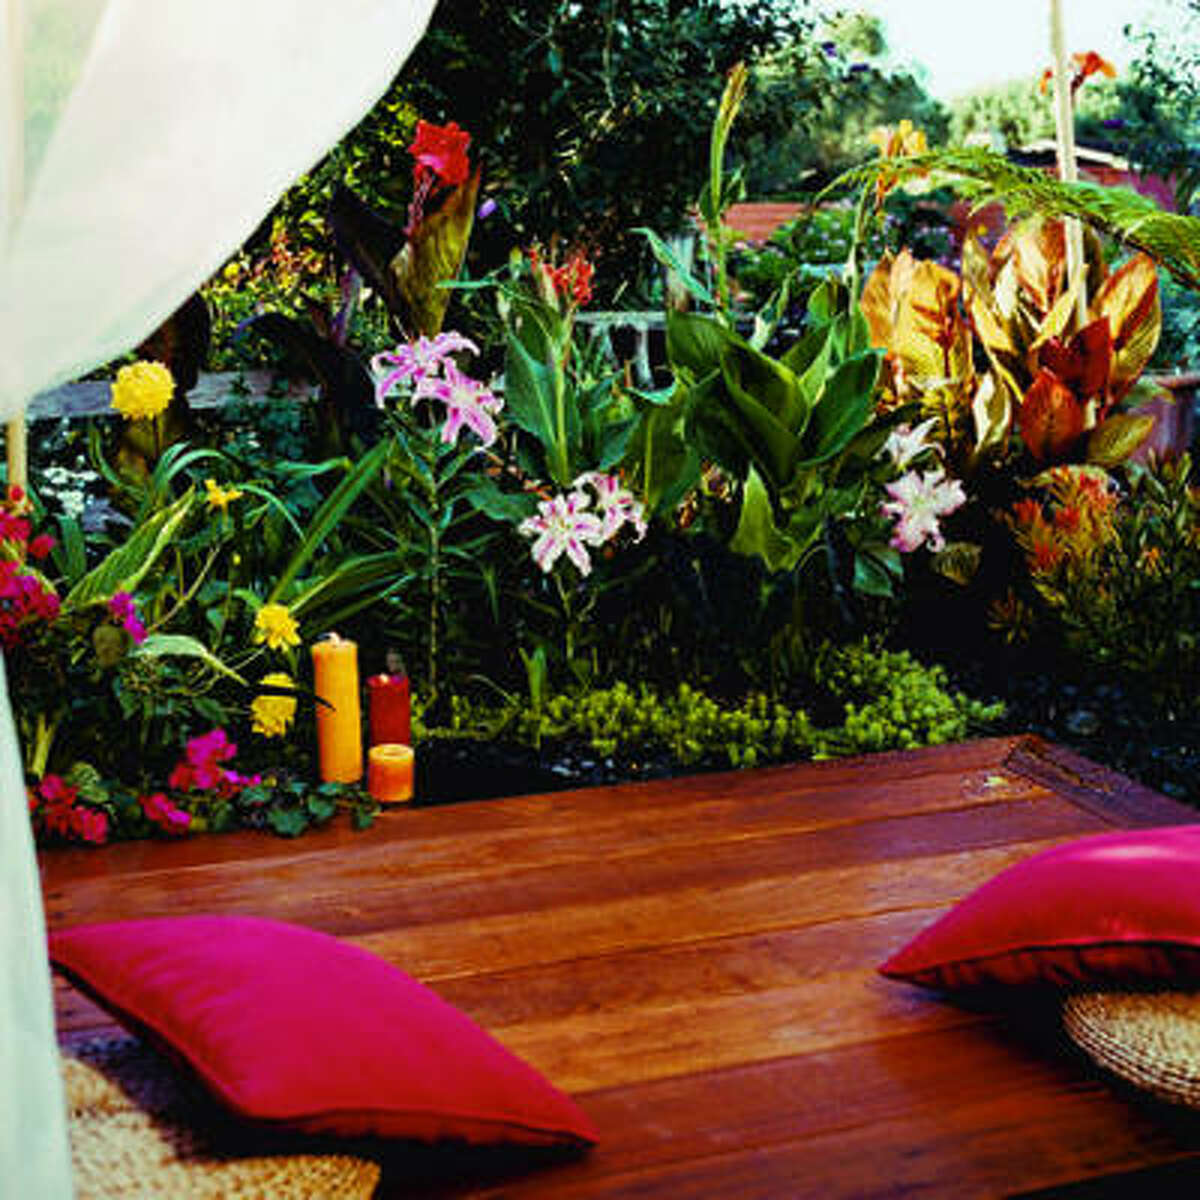 Billowy Bali retreat Sit on this compact deck, pull the netting around you, and you'll feel almost like you're floating in a cloud above a jungle of exotic flowers. Get the how-to